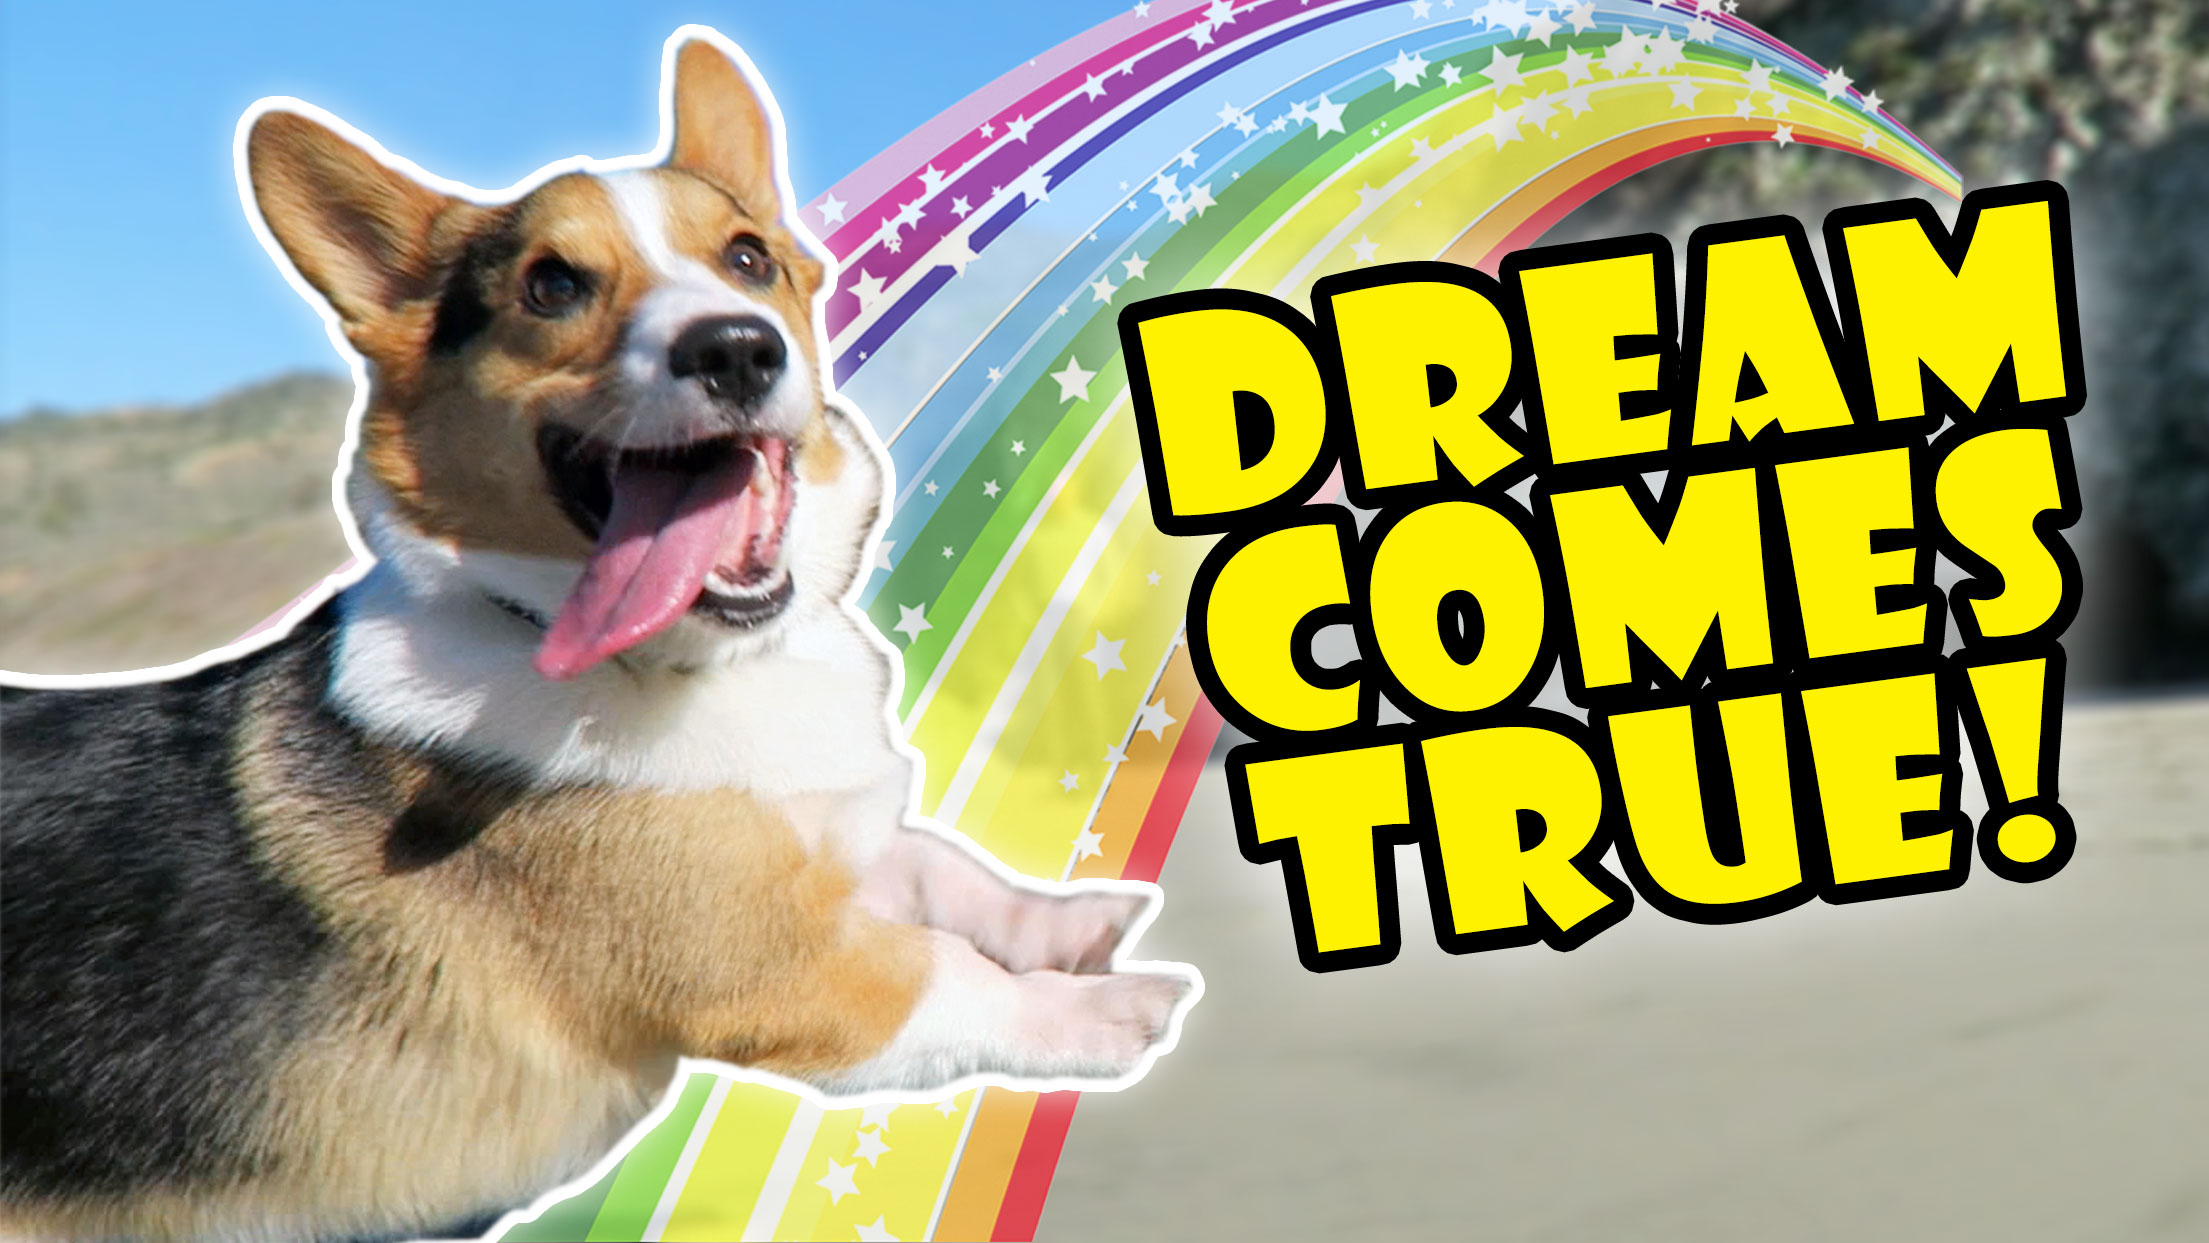 CORGIS DREAM COMES TRUE -- Best Day Ever!